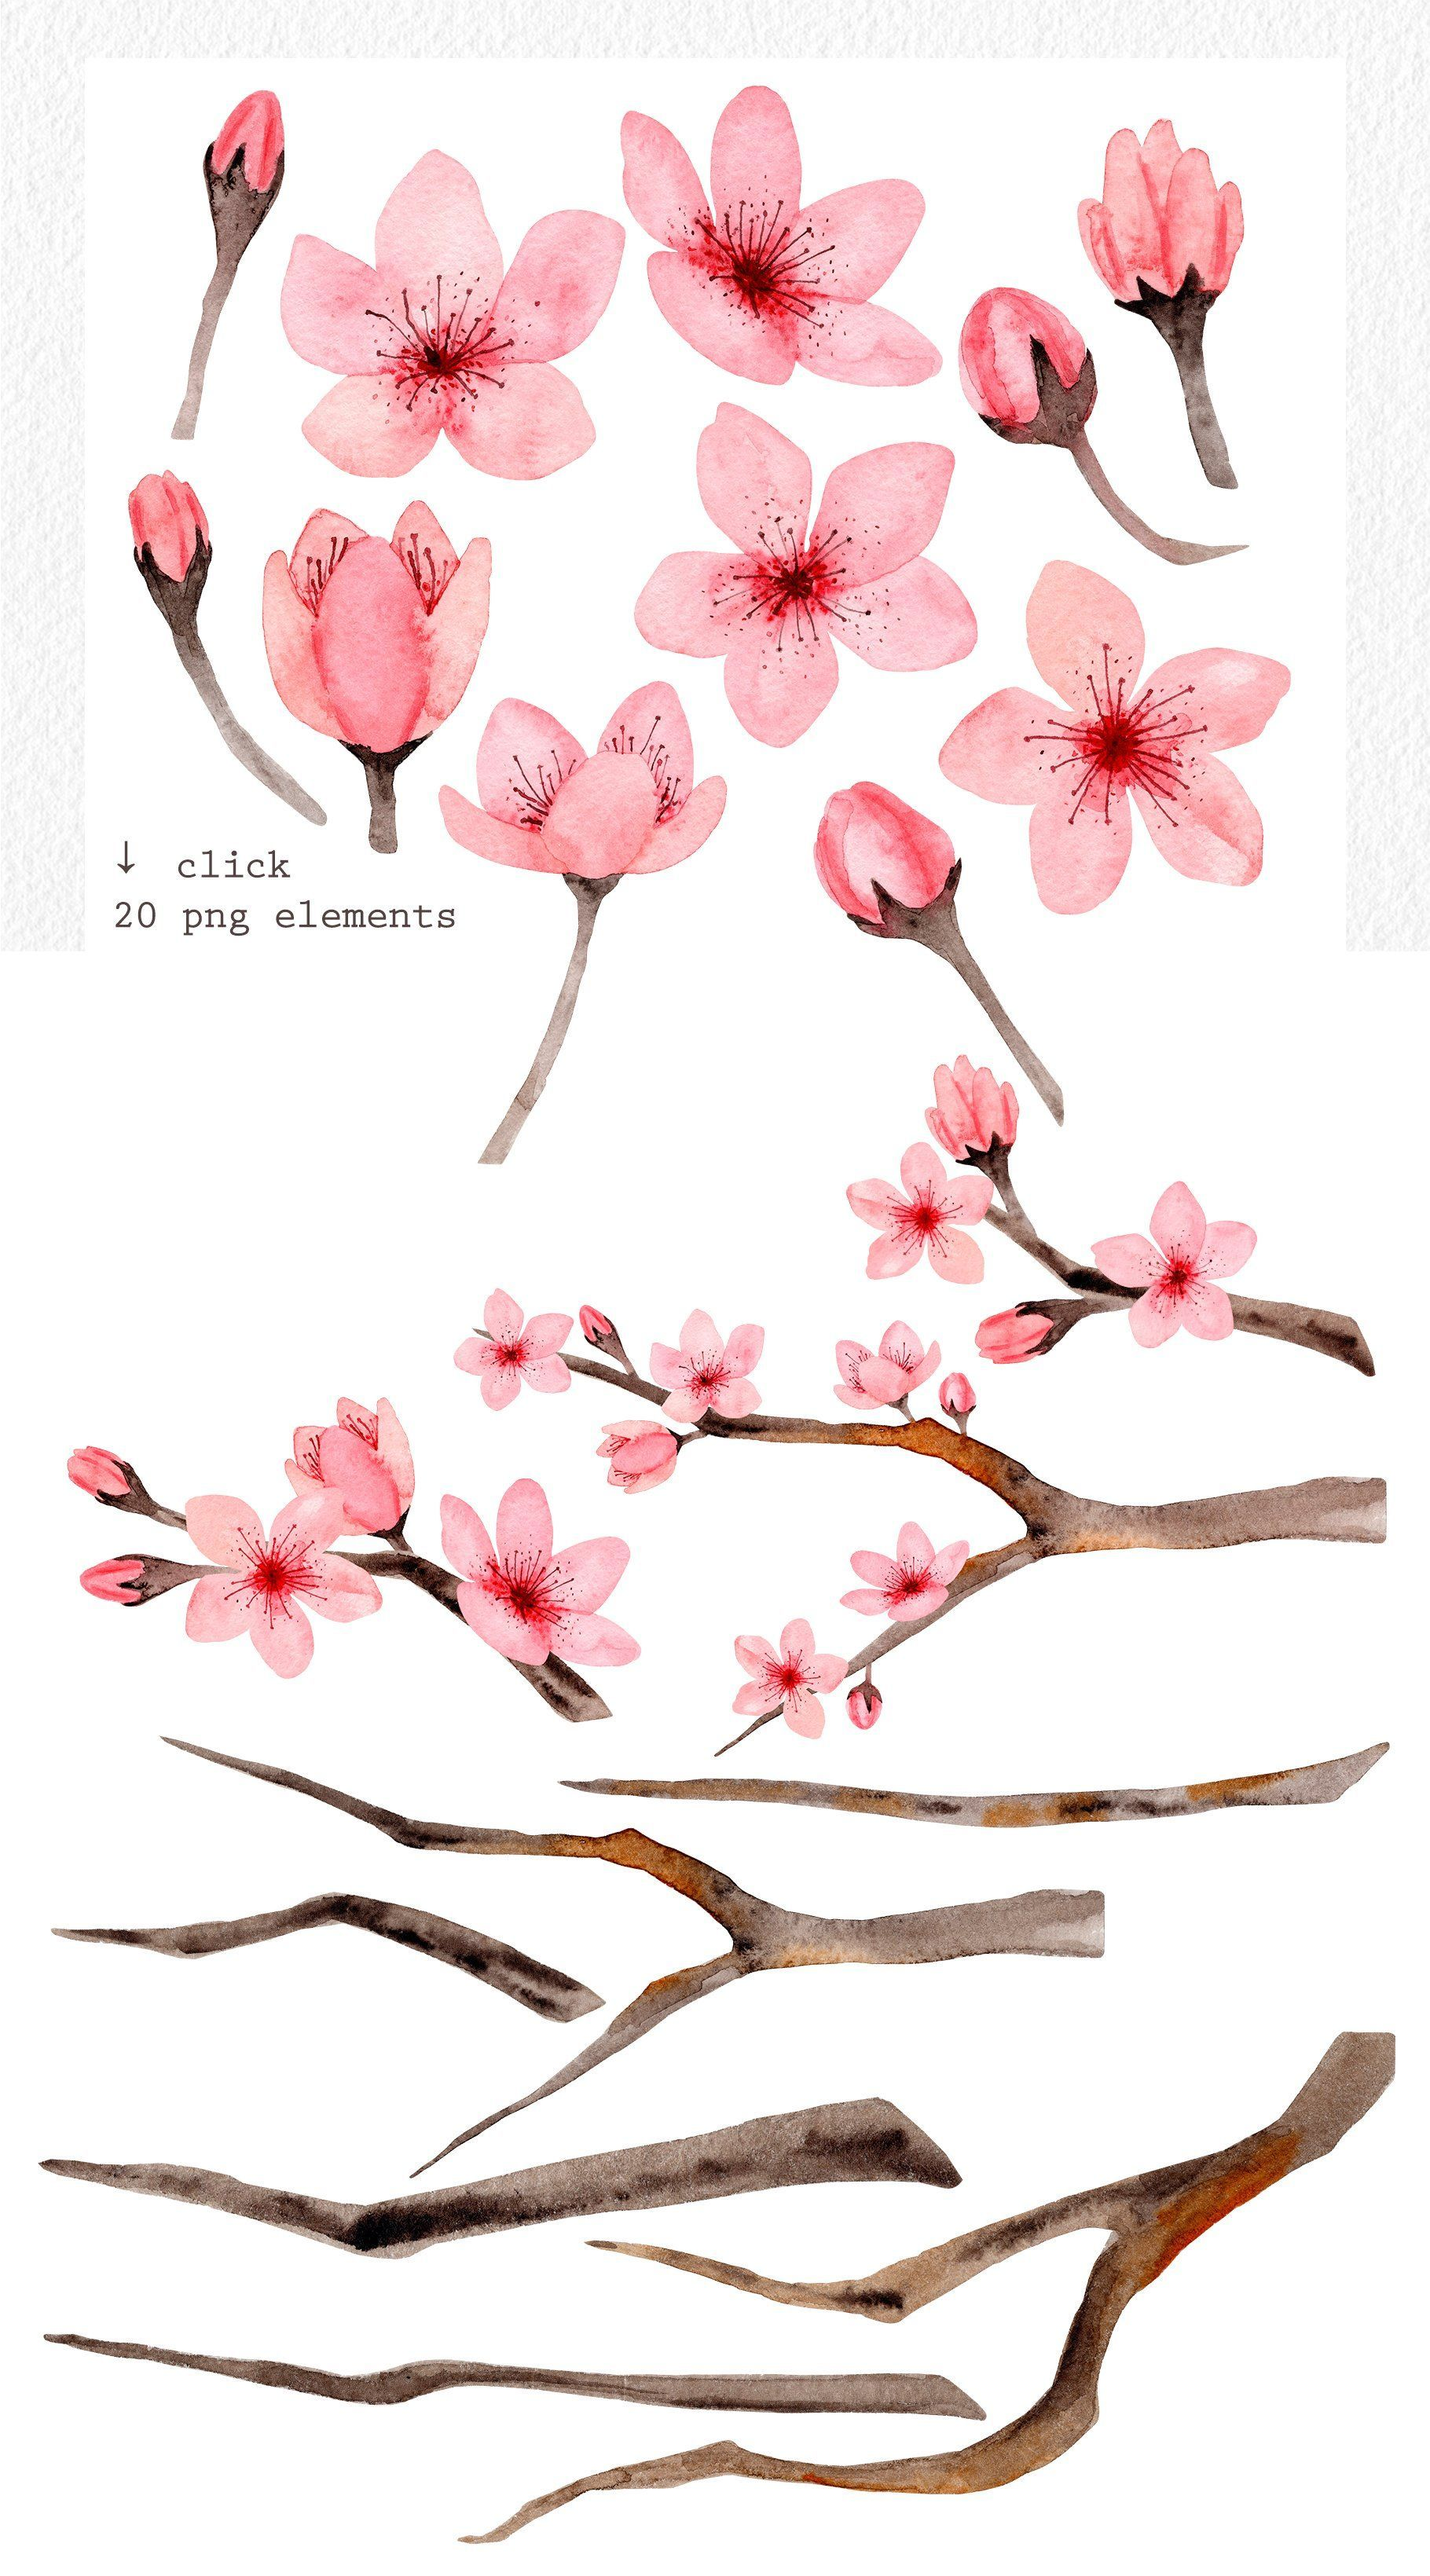 Watercolor Cherry Blossom Patterns By Slastick On Creative Market Watercolor Cherry Blo In 2020 Cherry Blossom Art Cherry Blossom Drawing Cherry Blossom Watercolor